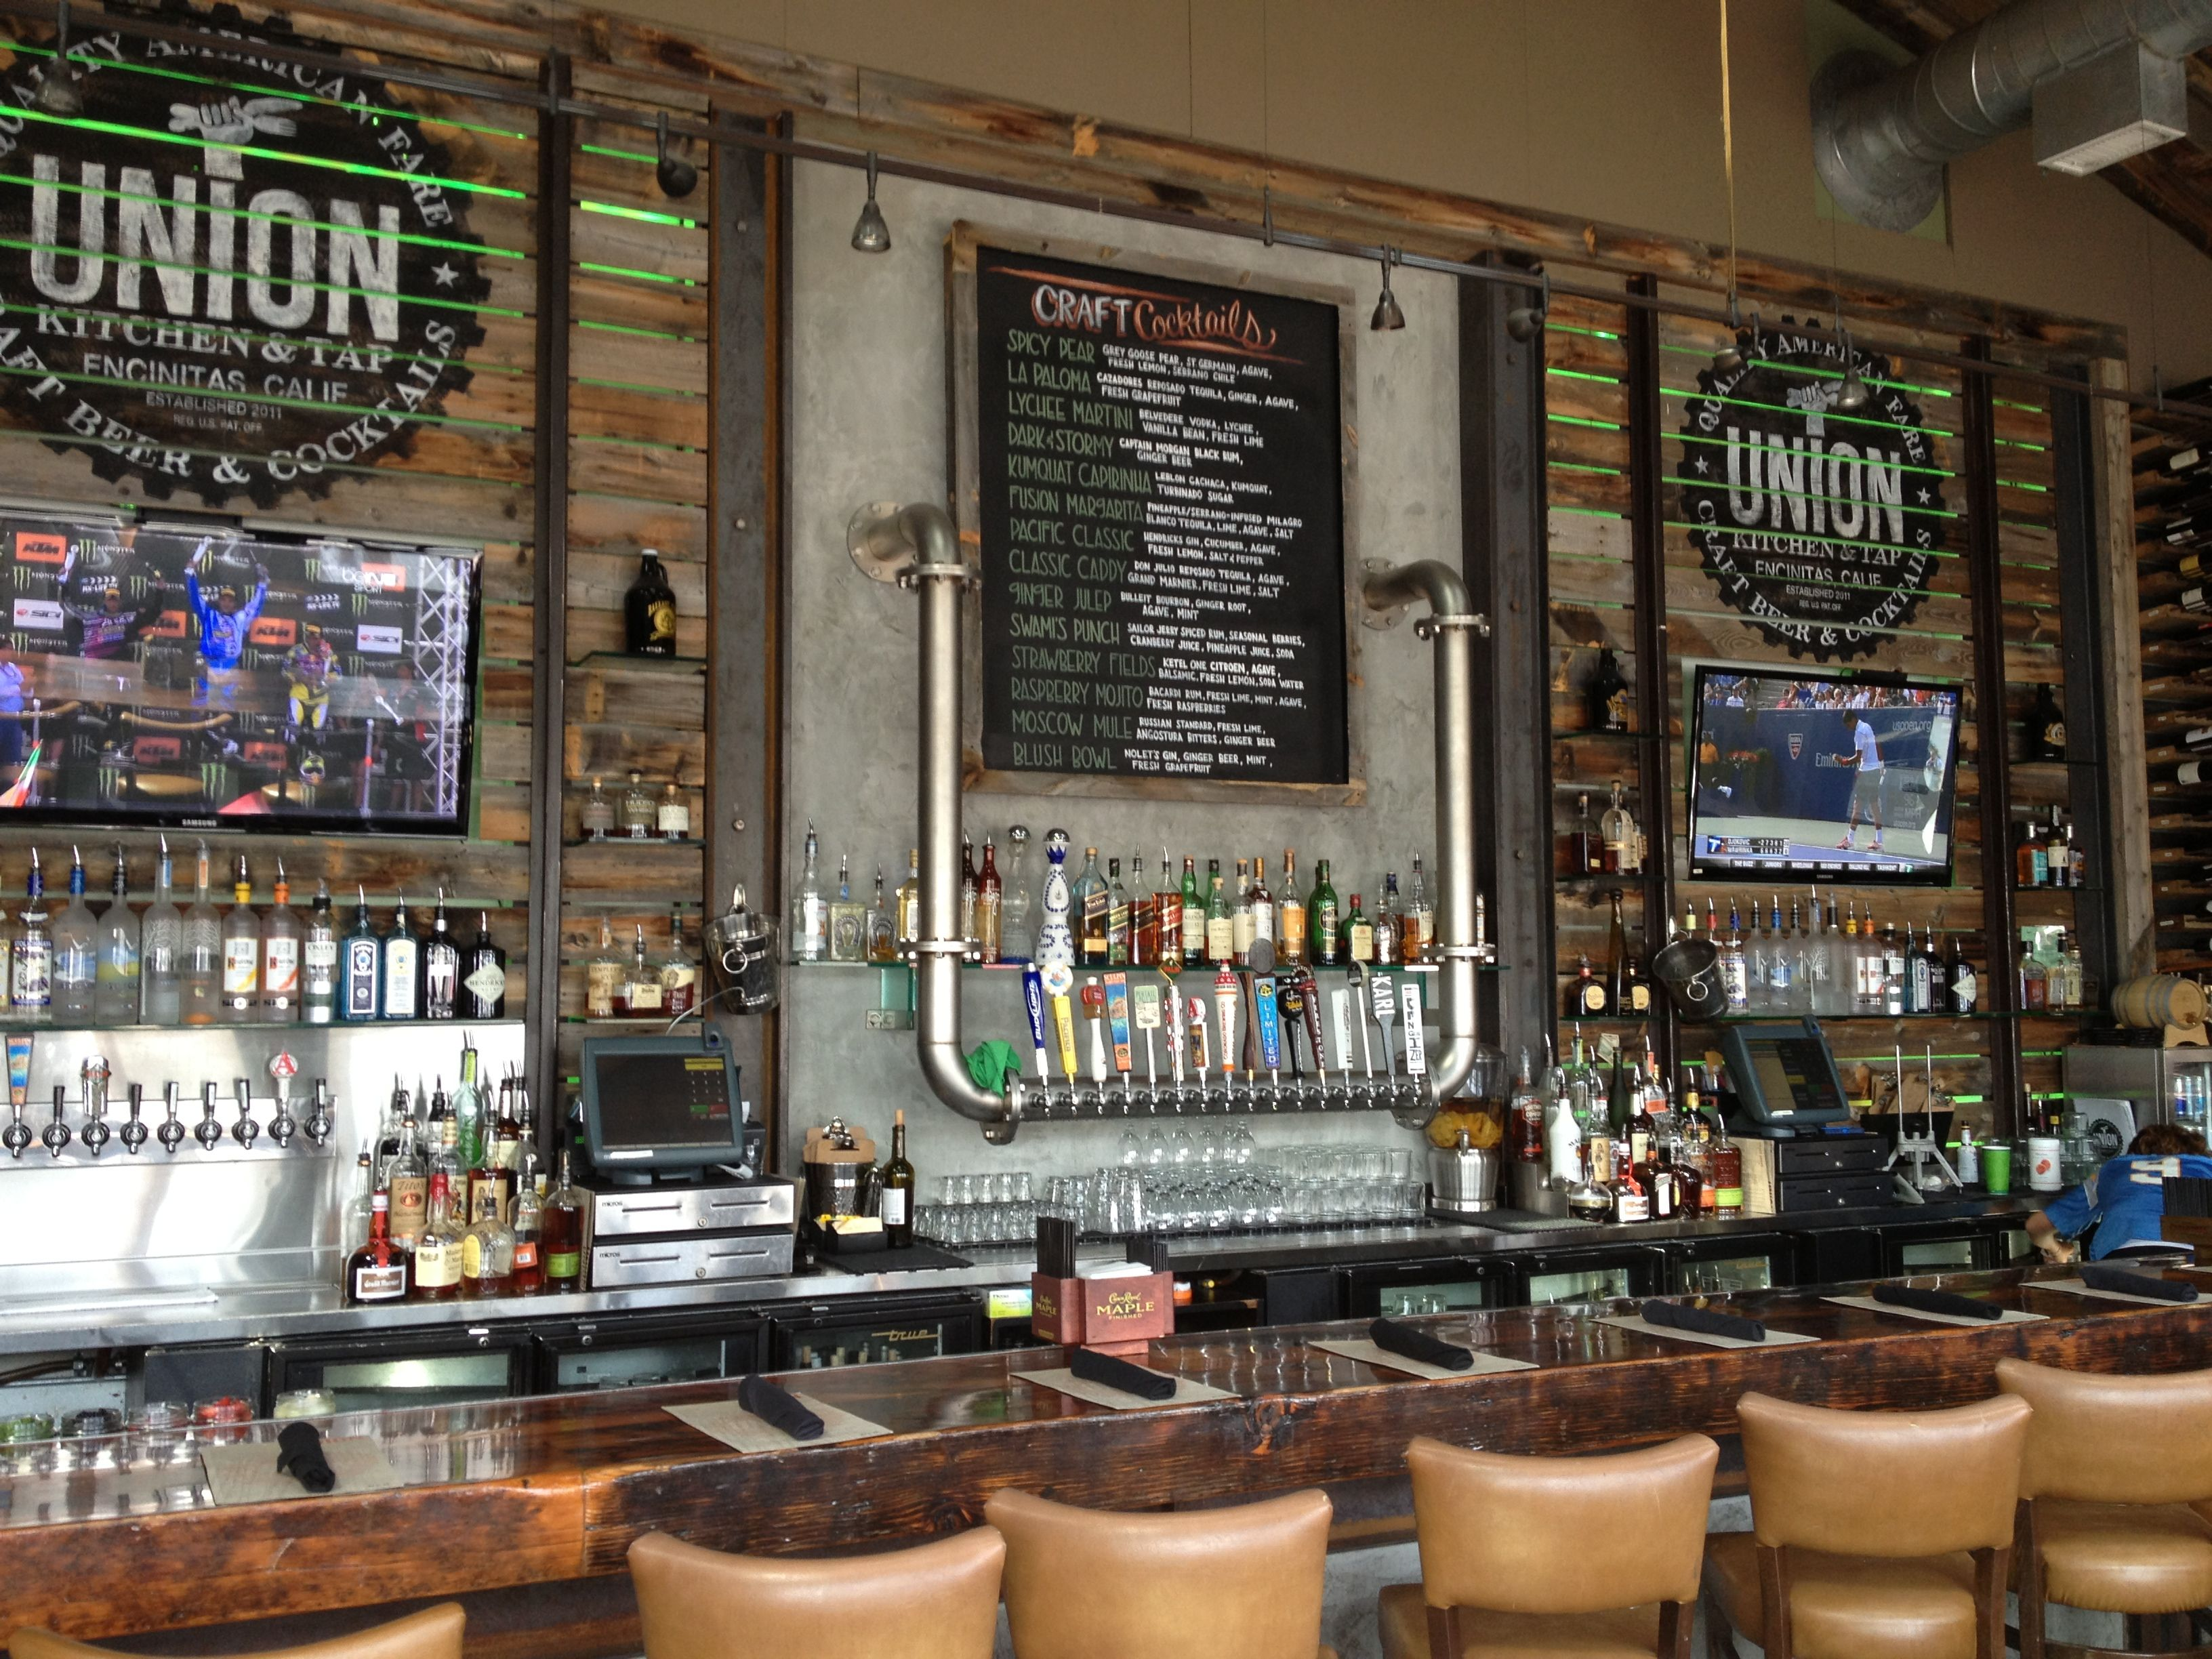 Union bar in Encinitas. Great bar design | Client | Oceanside ...